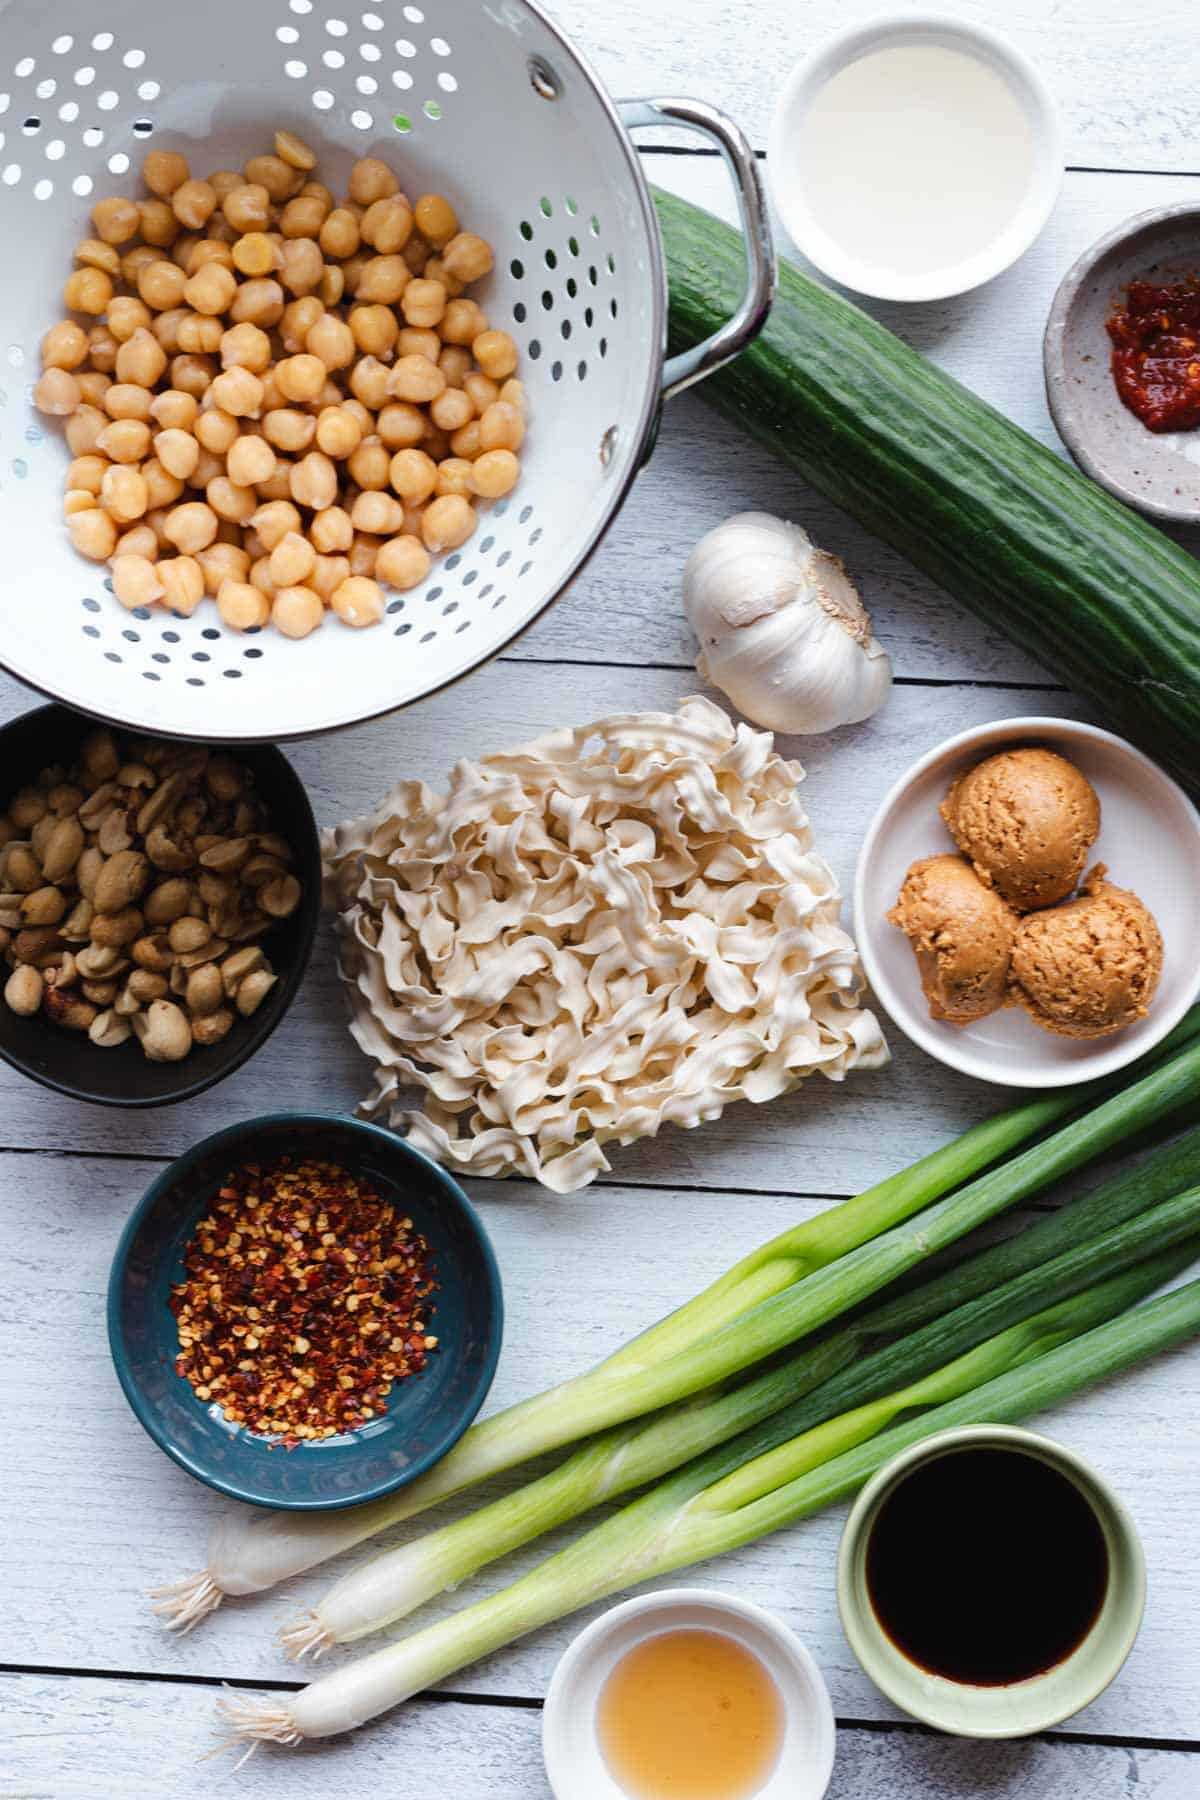 Ingredients for Peanut Noodle Salad with Chickpeas.